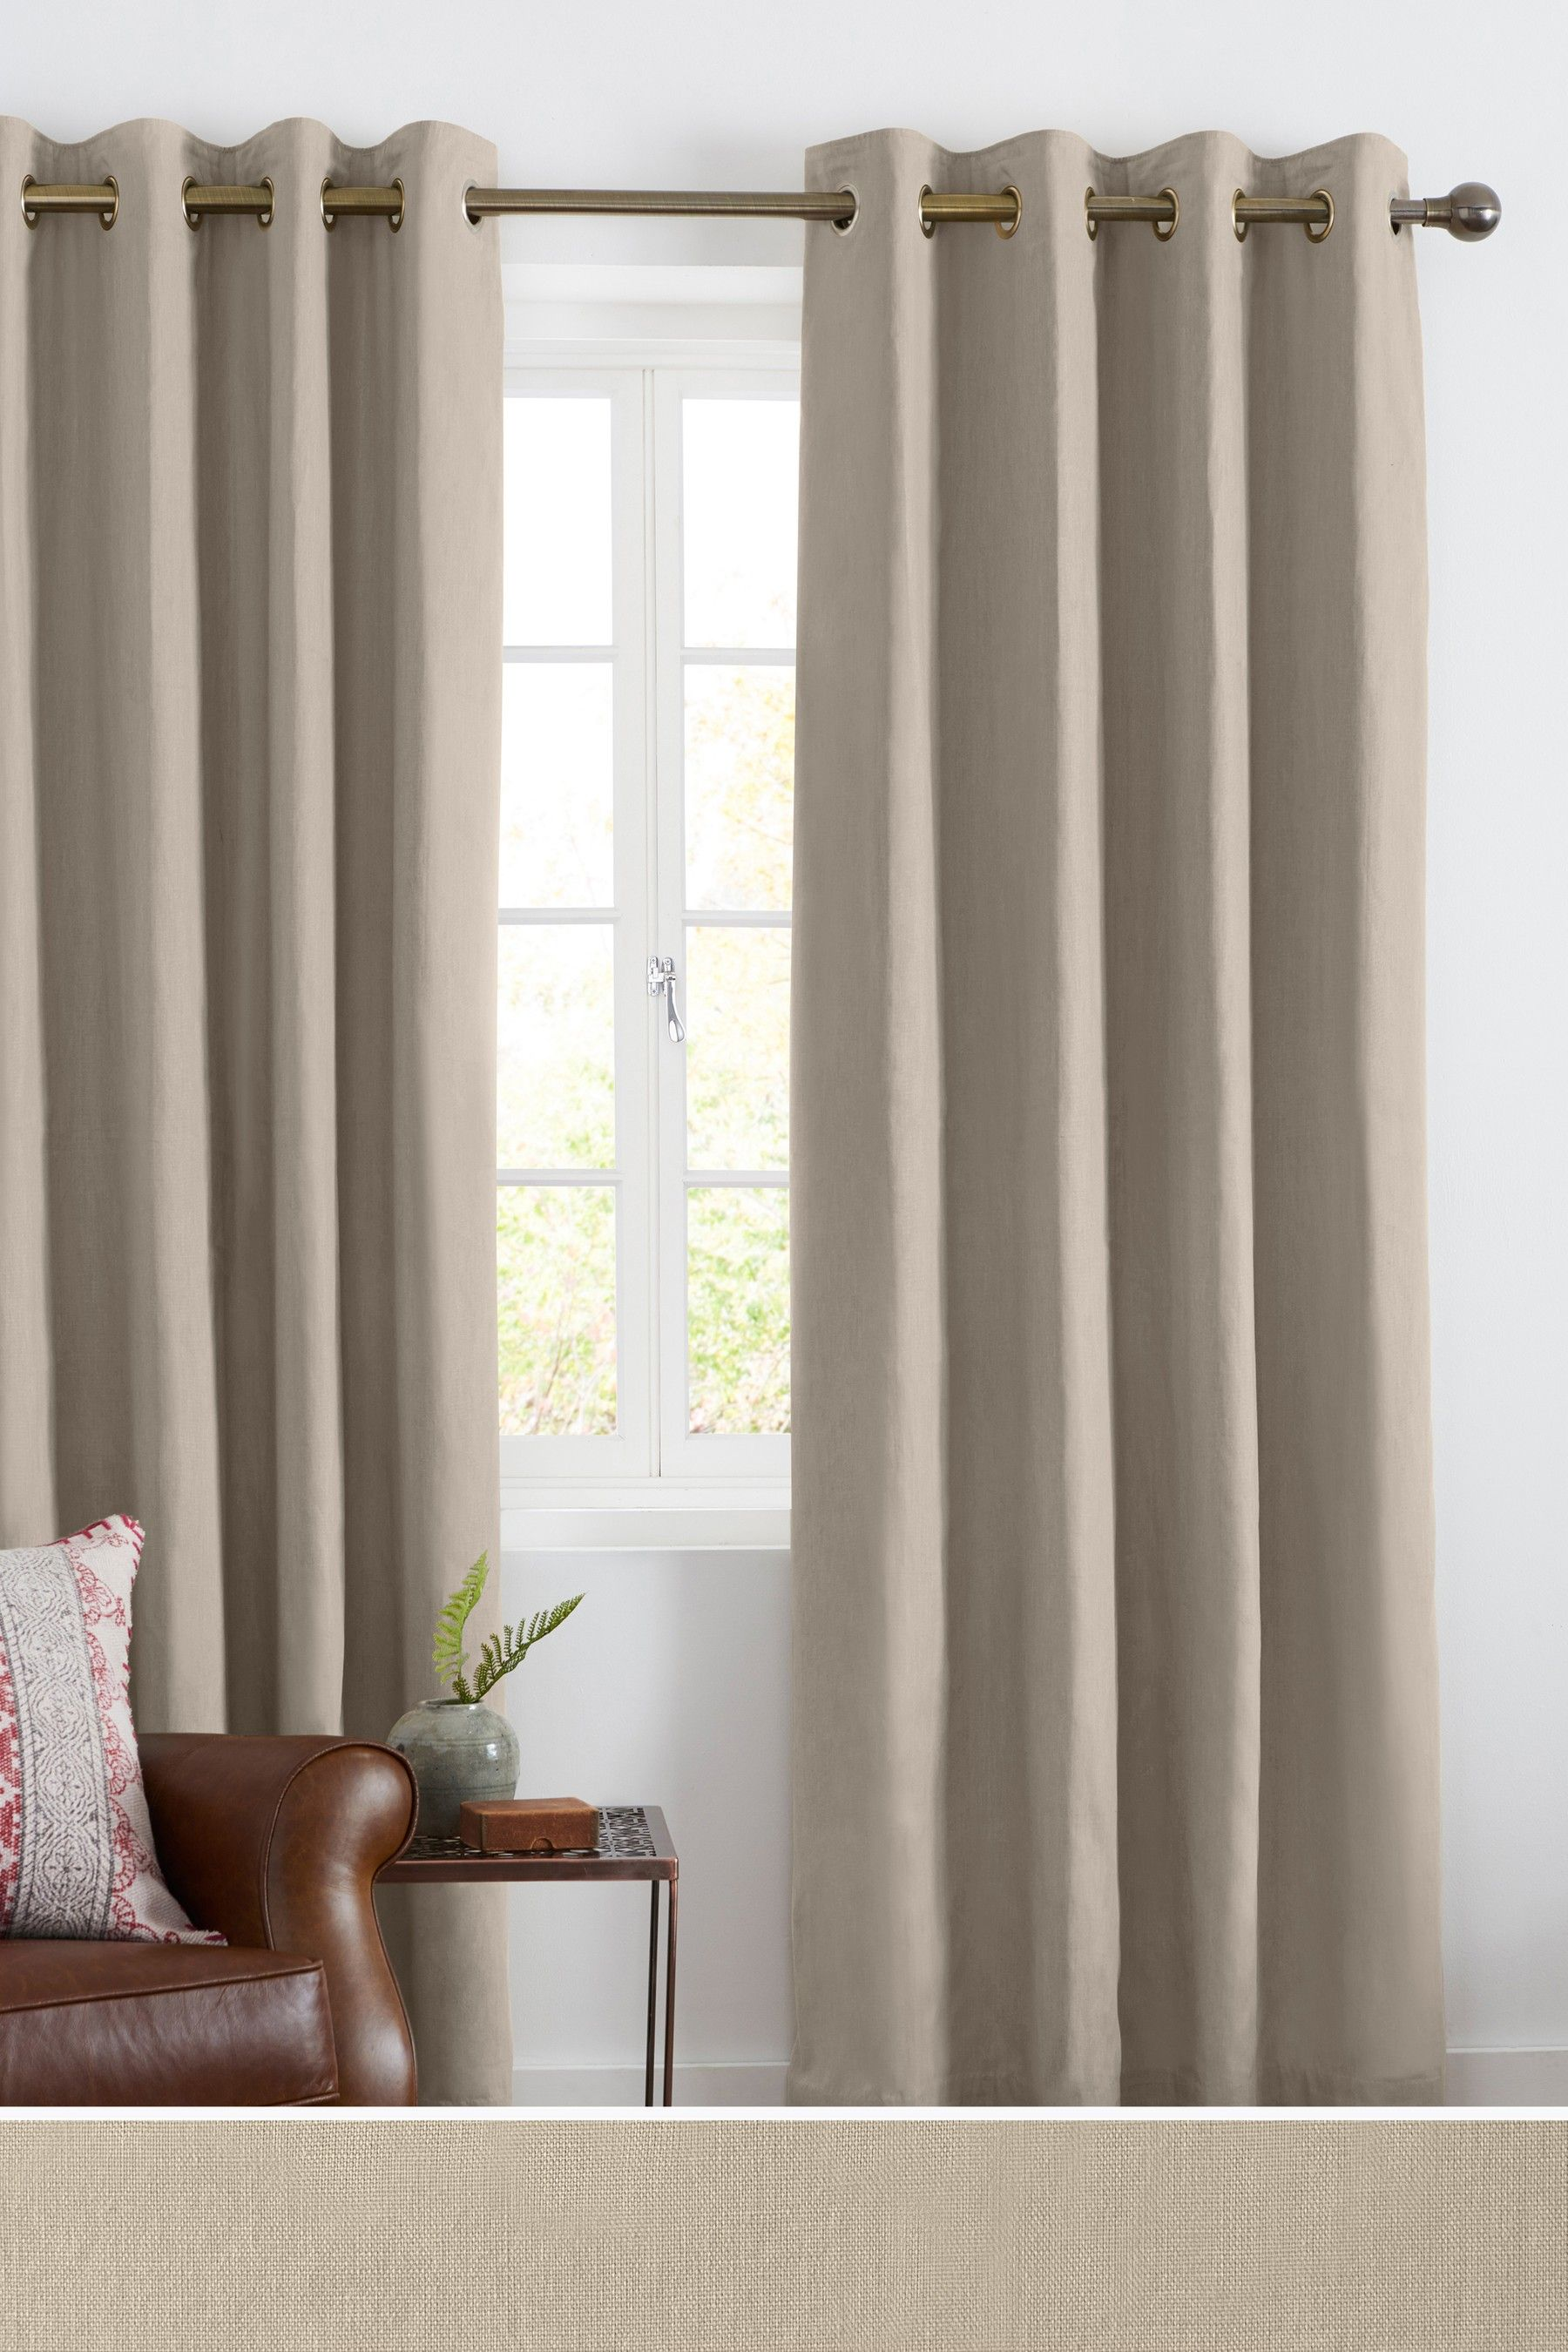 Next Cotton Eyelet Lined Curtains Natural Lined Curtains Curtains